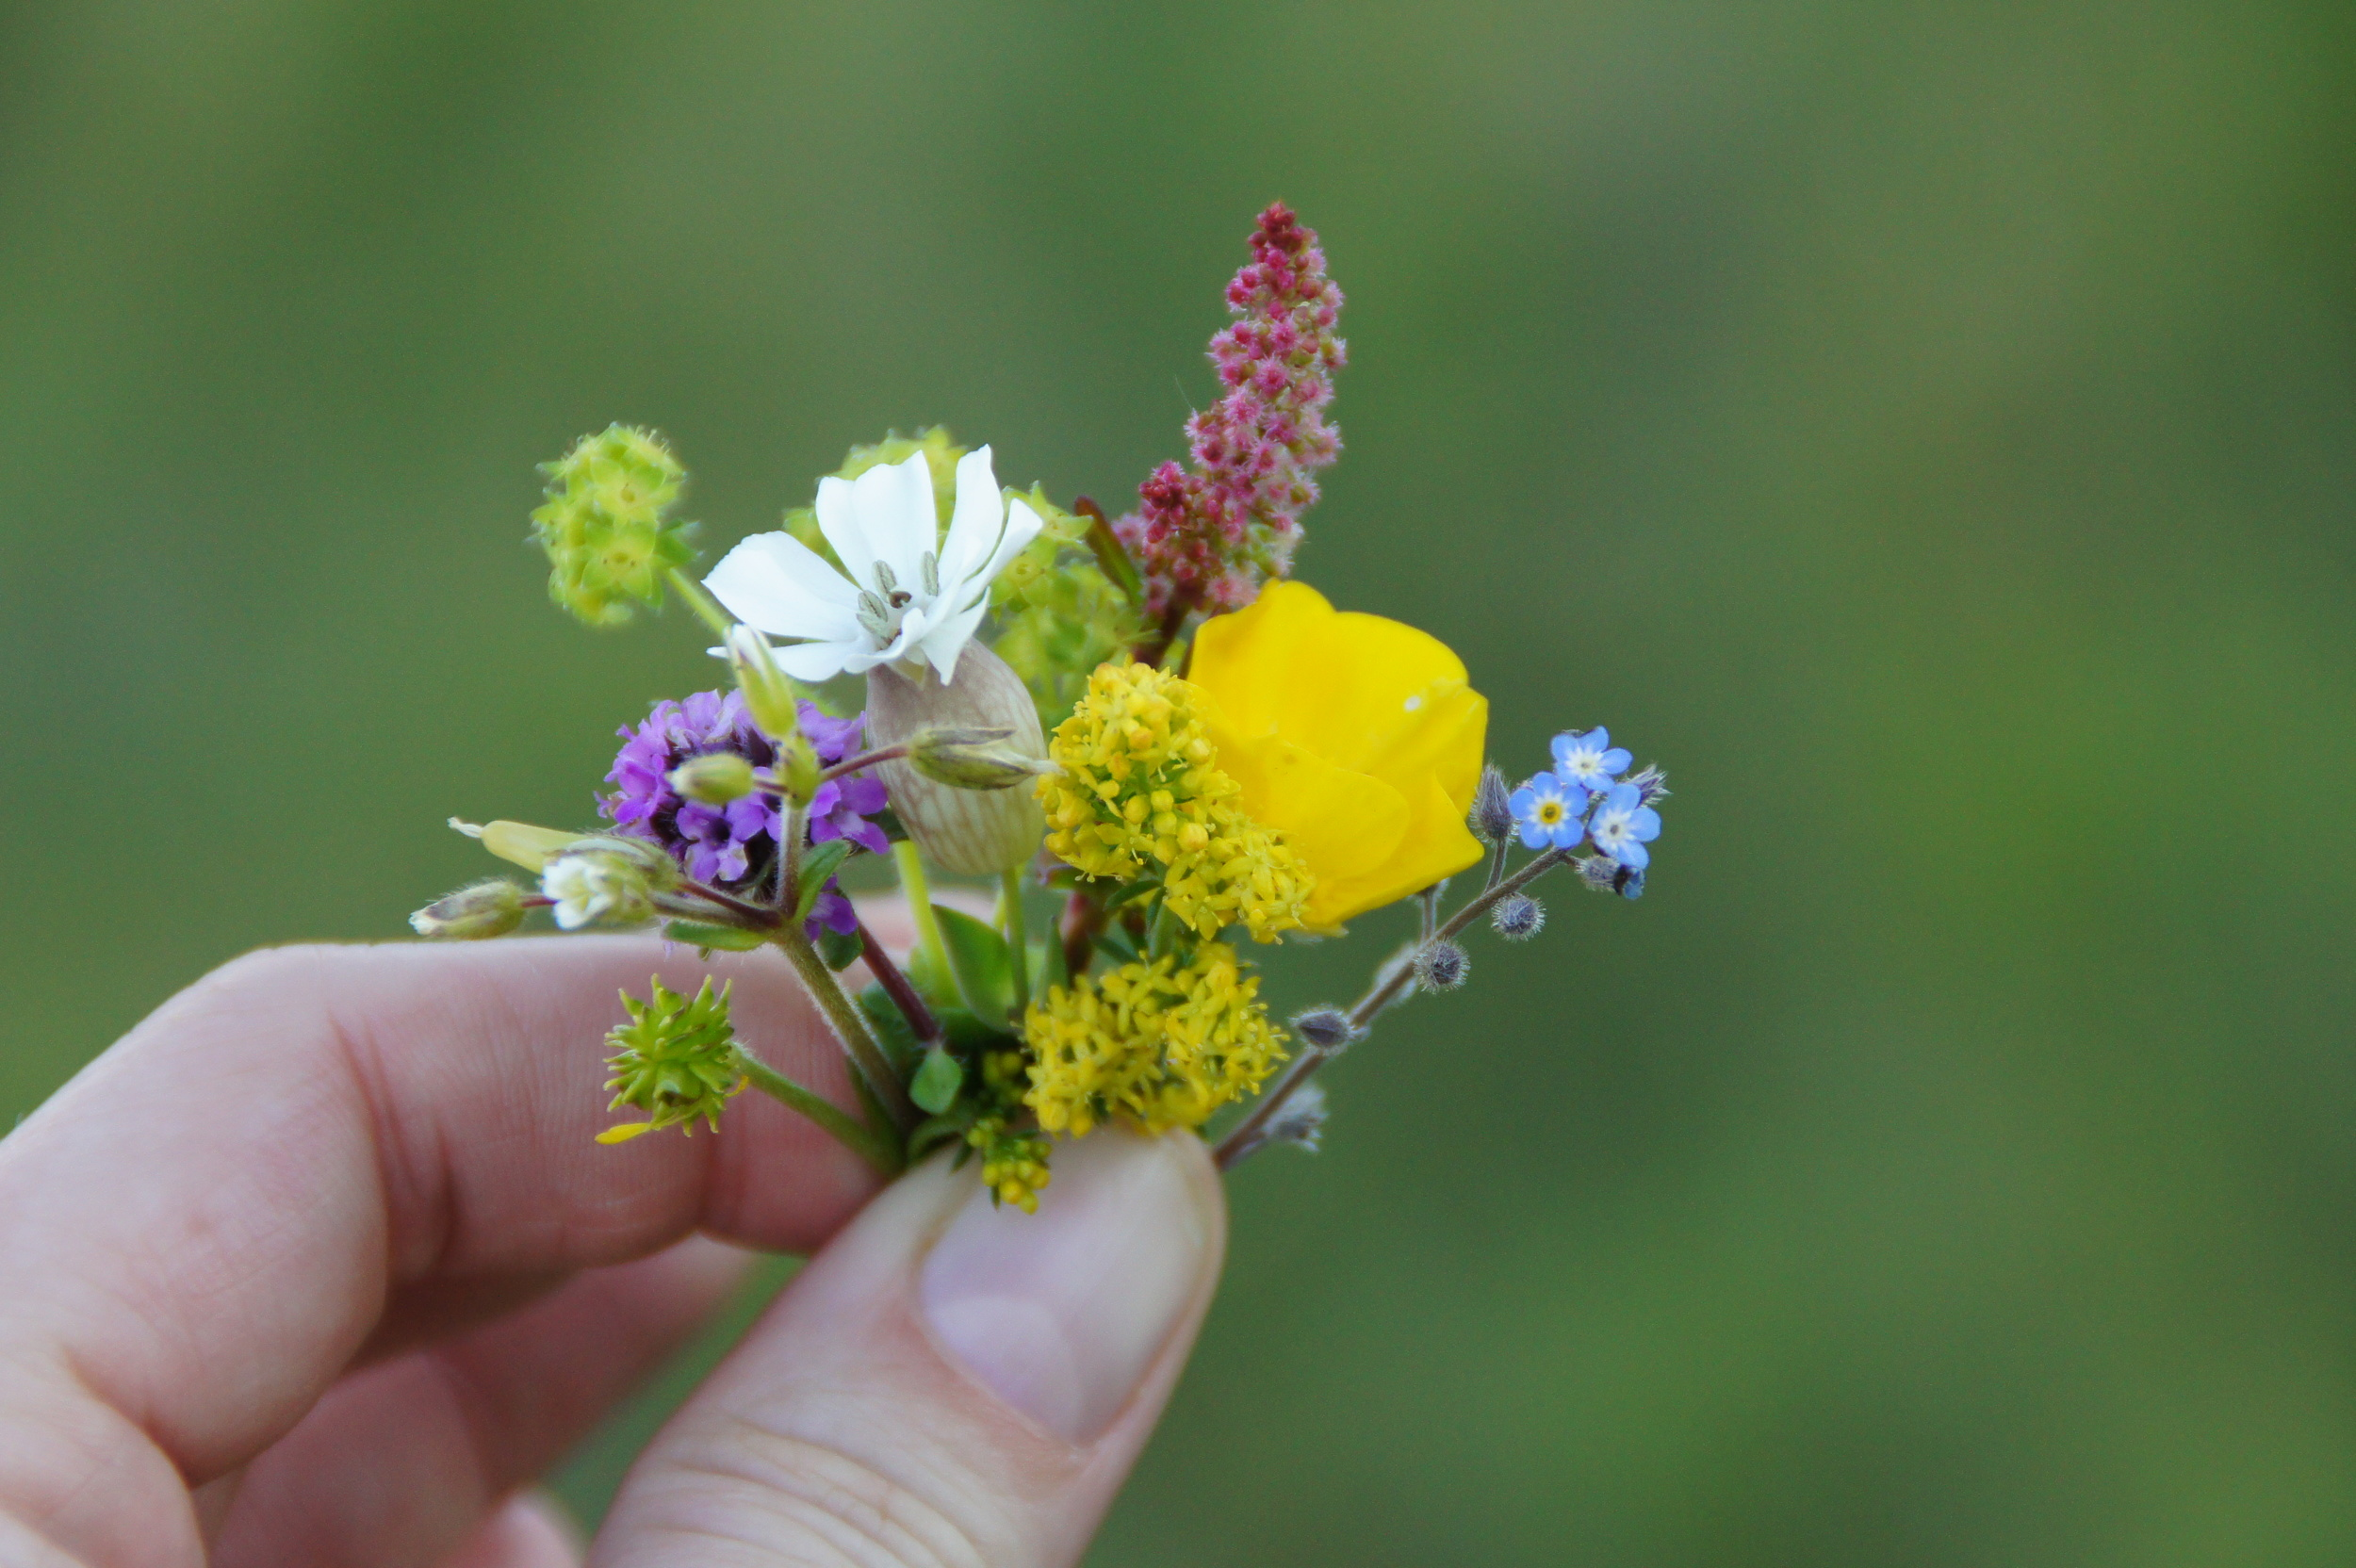 While Chris ran up the steep hill, I took my time picking the tiniest bouquet of wildflowers.